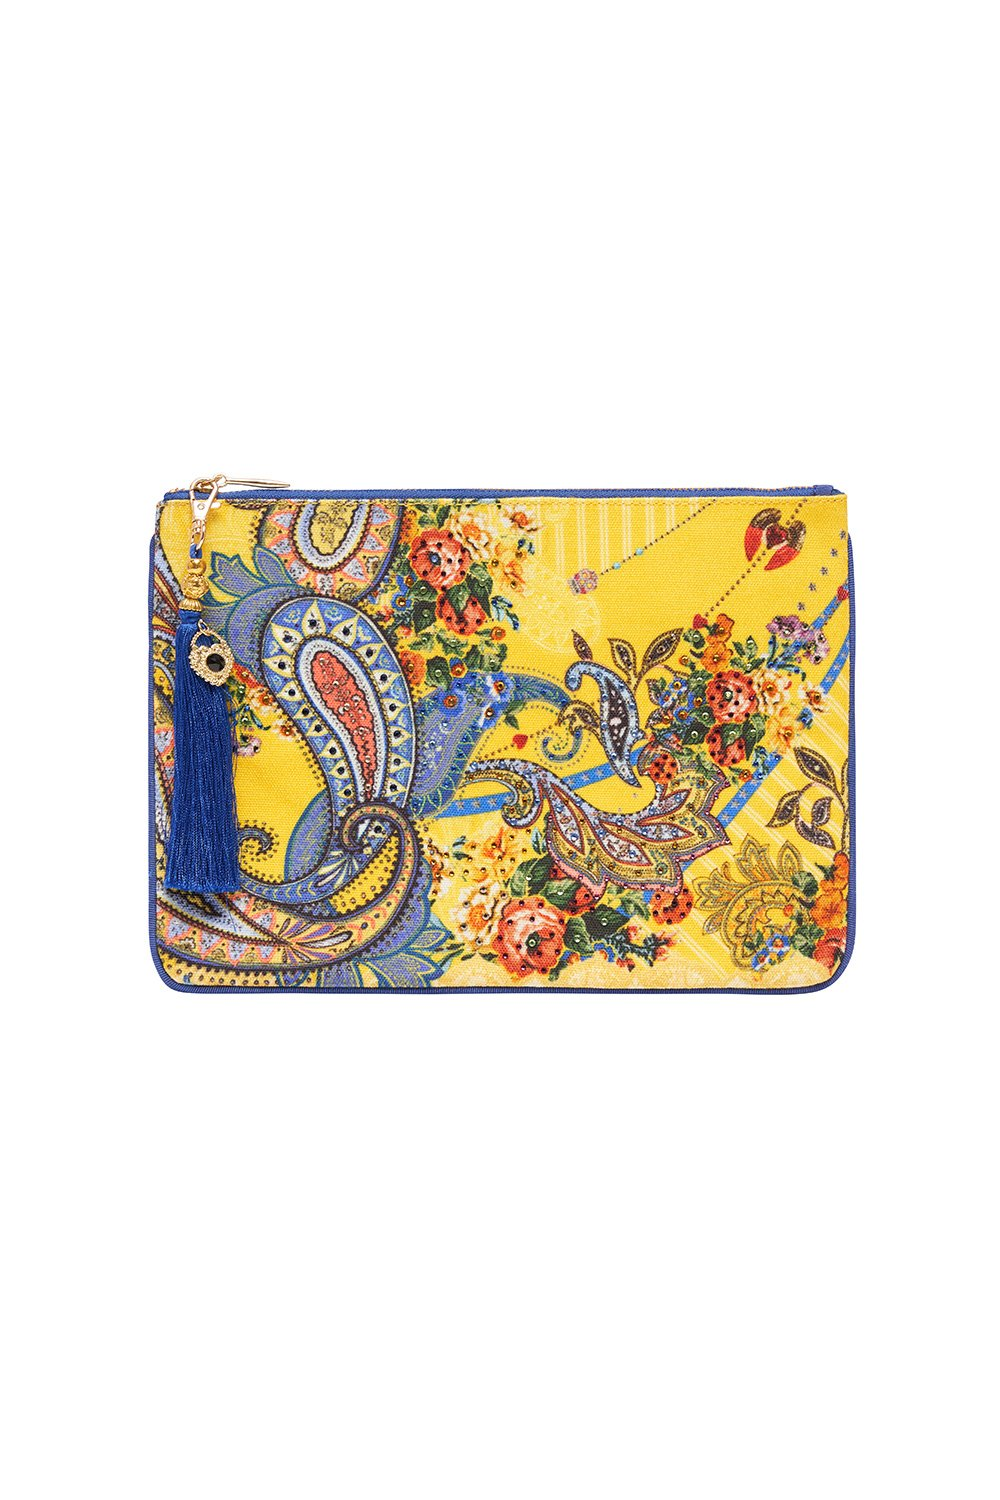 SMALL CANVAS CLUTCH OWN MUSE